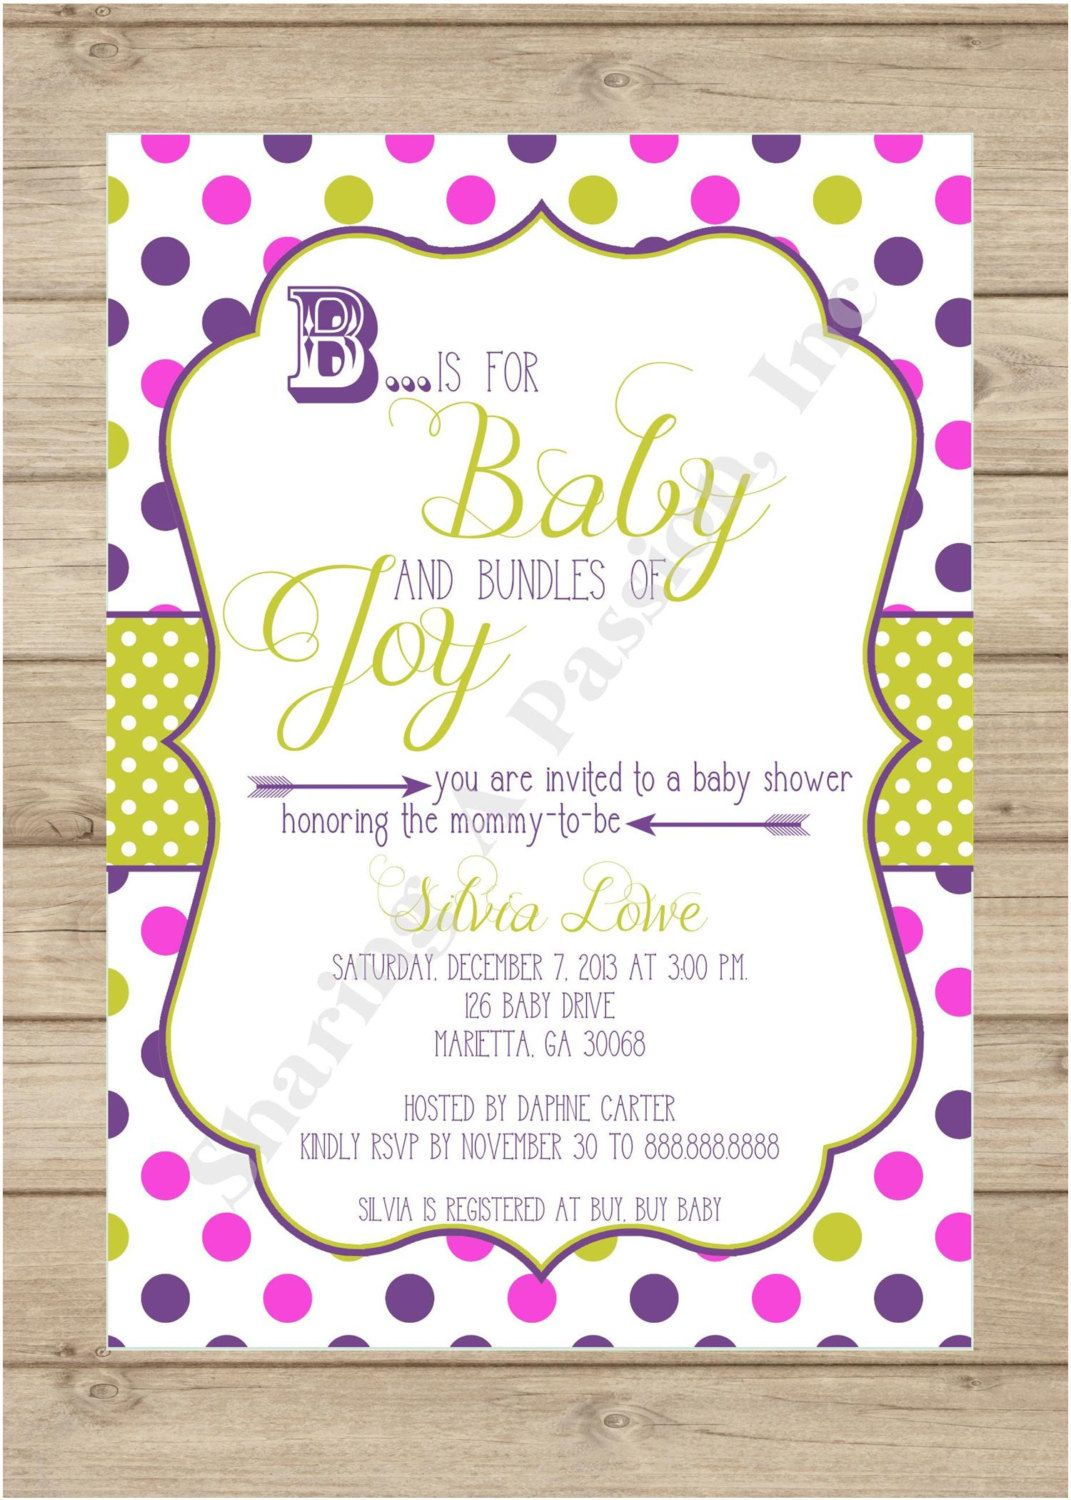 B is for baby invitation unique invitations by sharingapassioninc b is for baby invitation purple and green baby shower invitation colorful baby shower custom invitations printable invitations baby shower filmwisefo